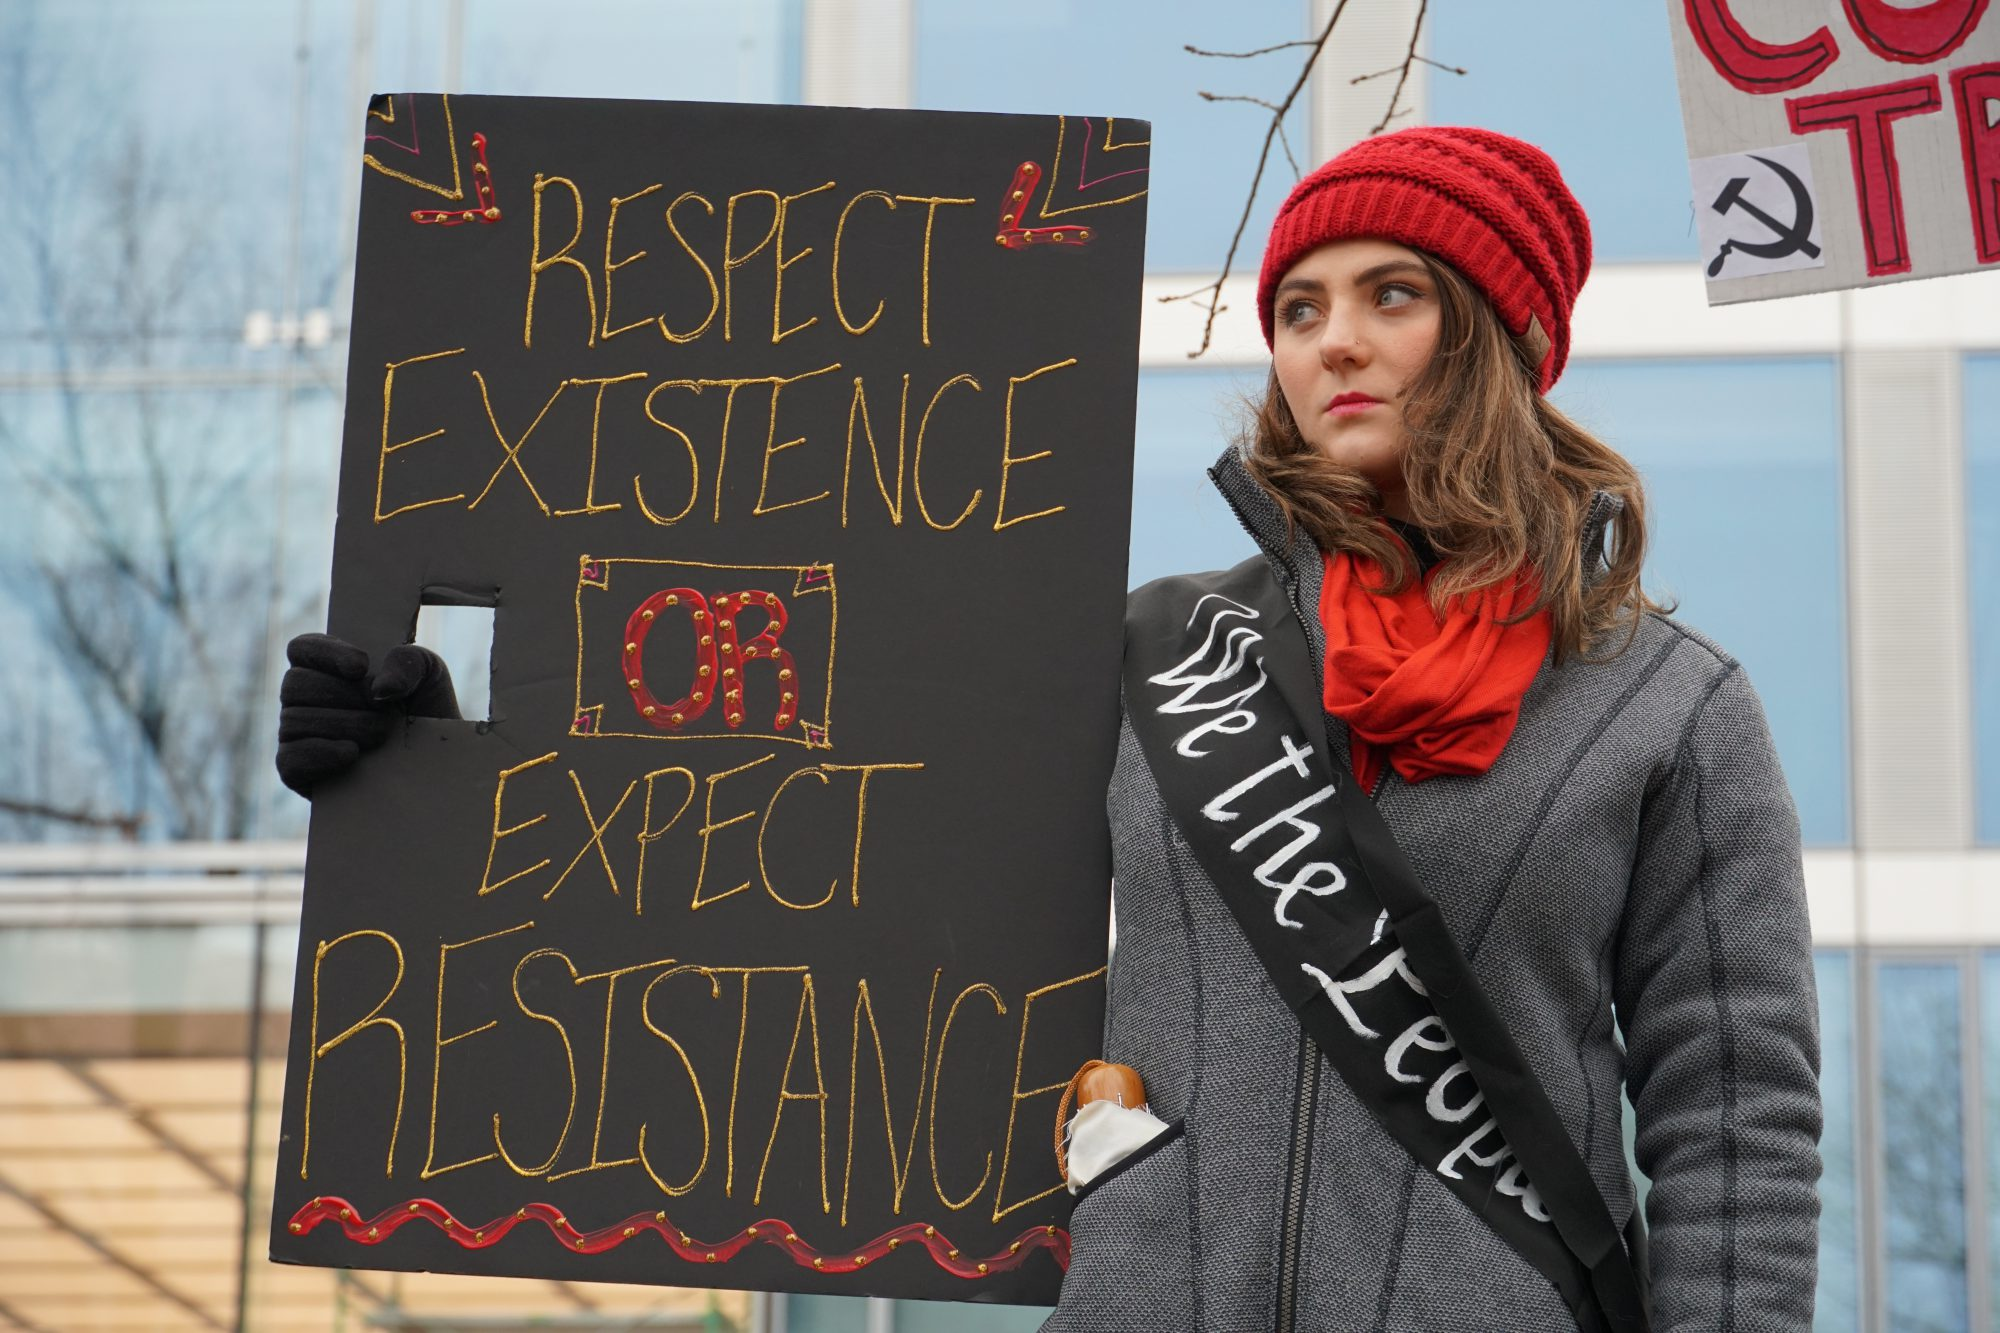 A woman holds up a sign at the Women's March rally. (Ester Wells/MNS)